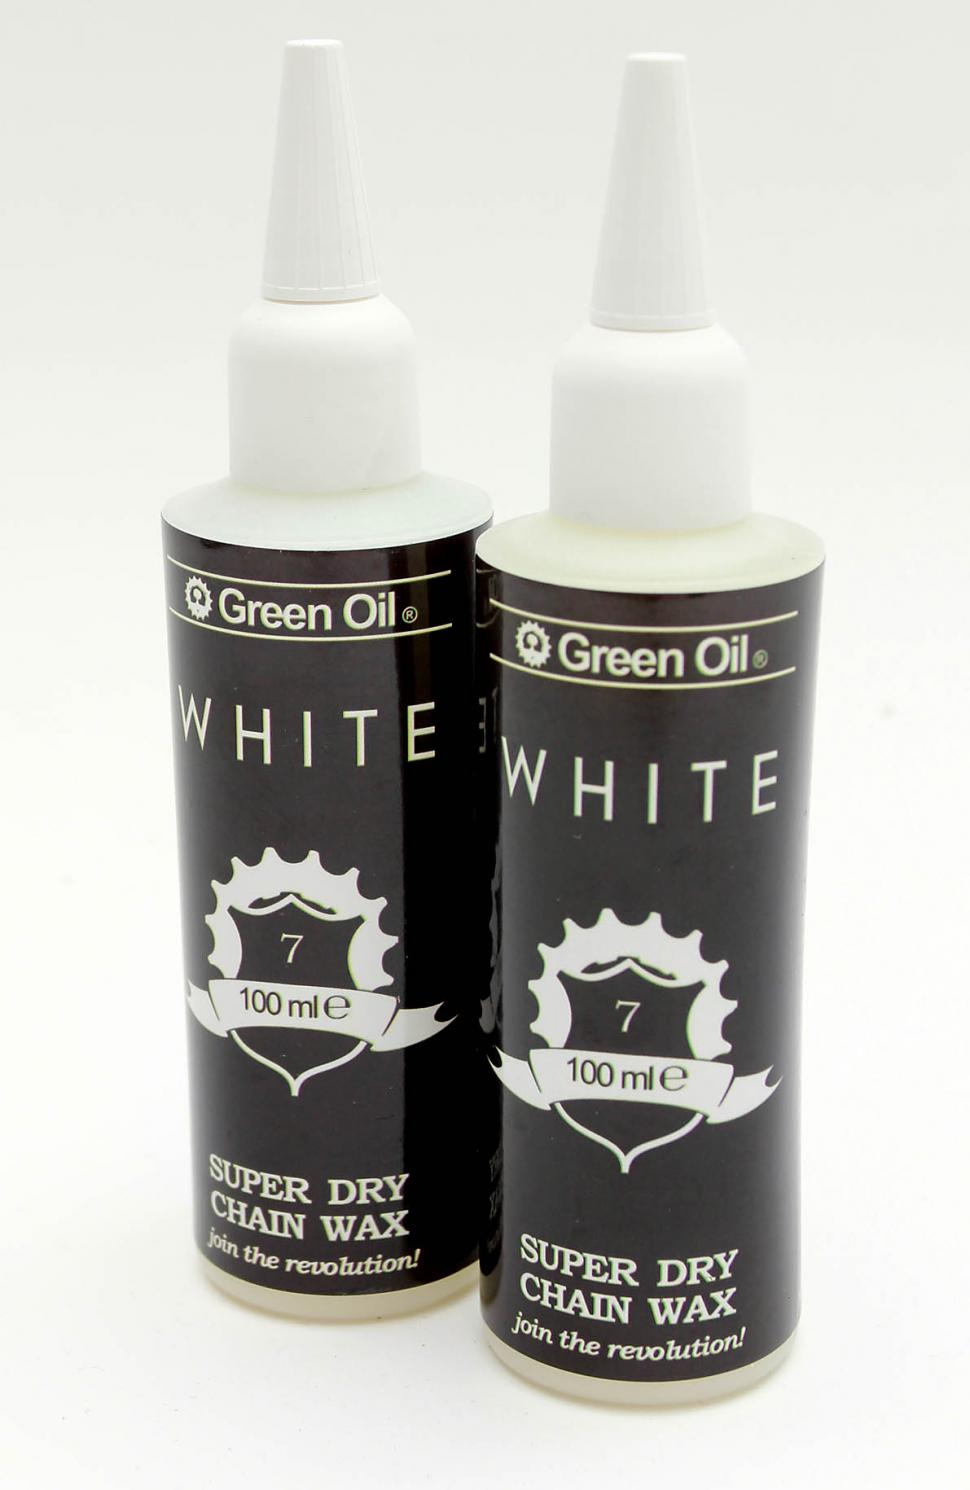 Green Oil White chain wax